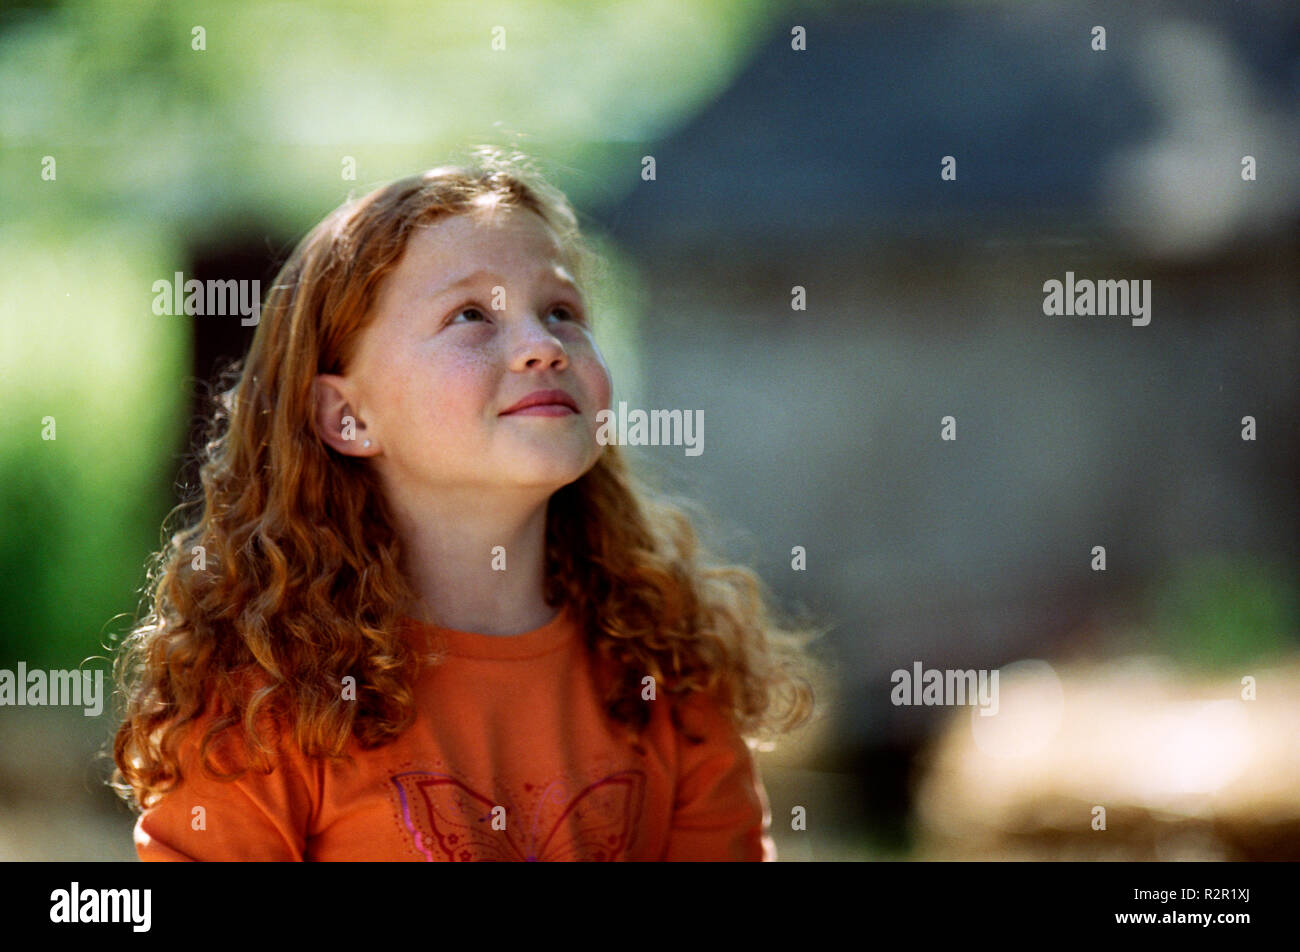 Girl looking up while outside. - Stock Image